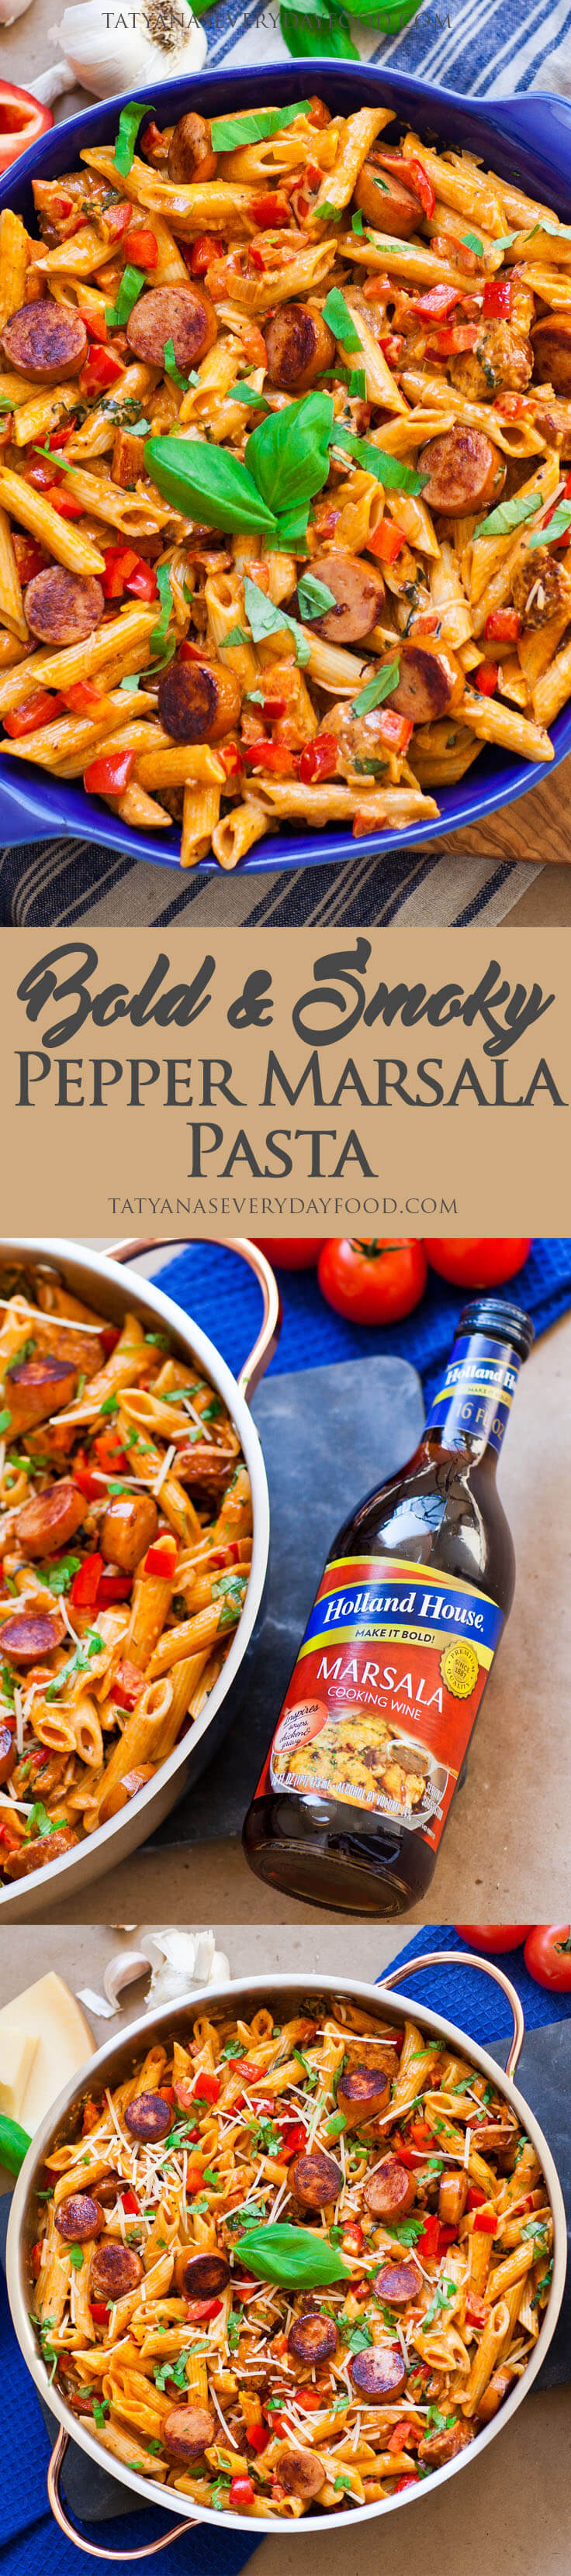 Bold smoky pepper marsala pasta tatyanas everyday food ive been using holland house cooking wines since i started cooking my mom always had this cooking wine in her pantry and now i love forumfinder Images